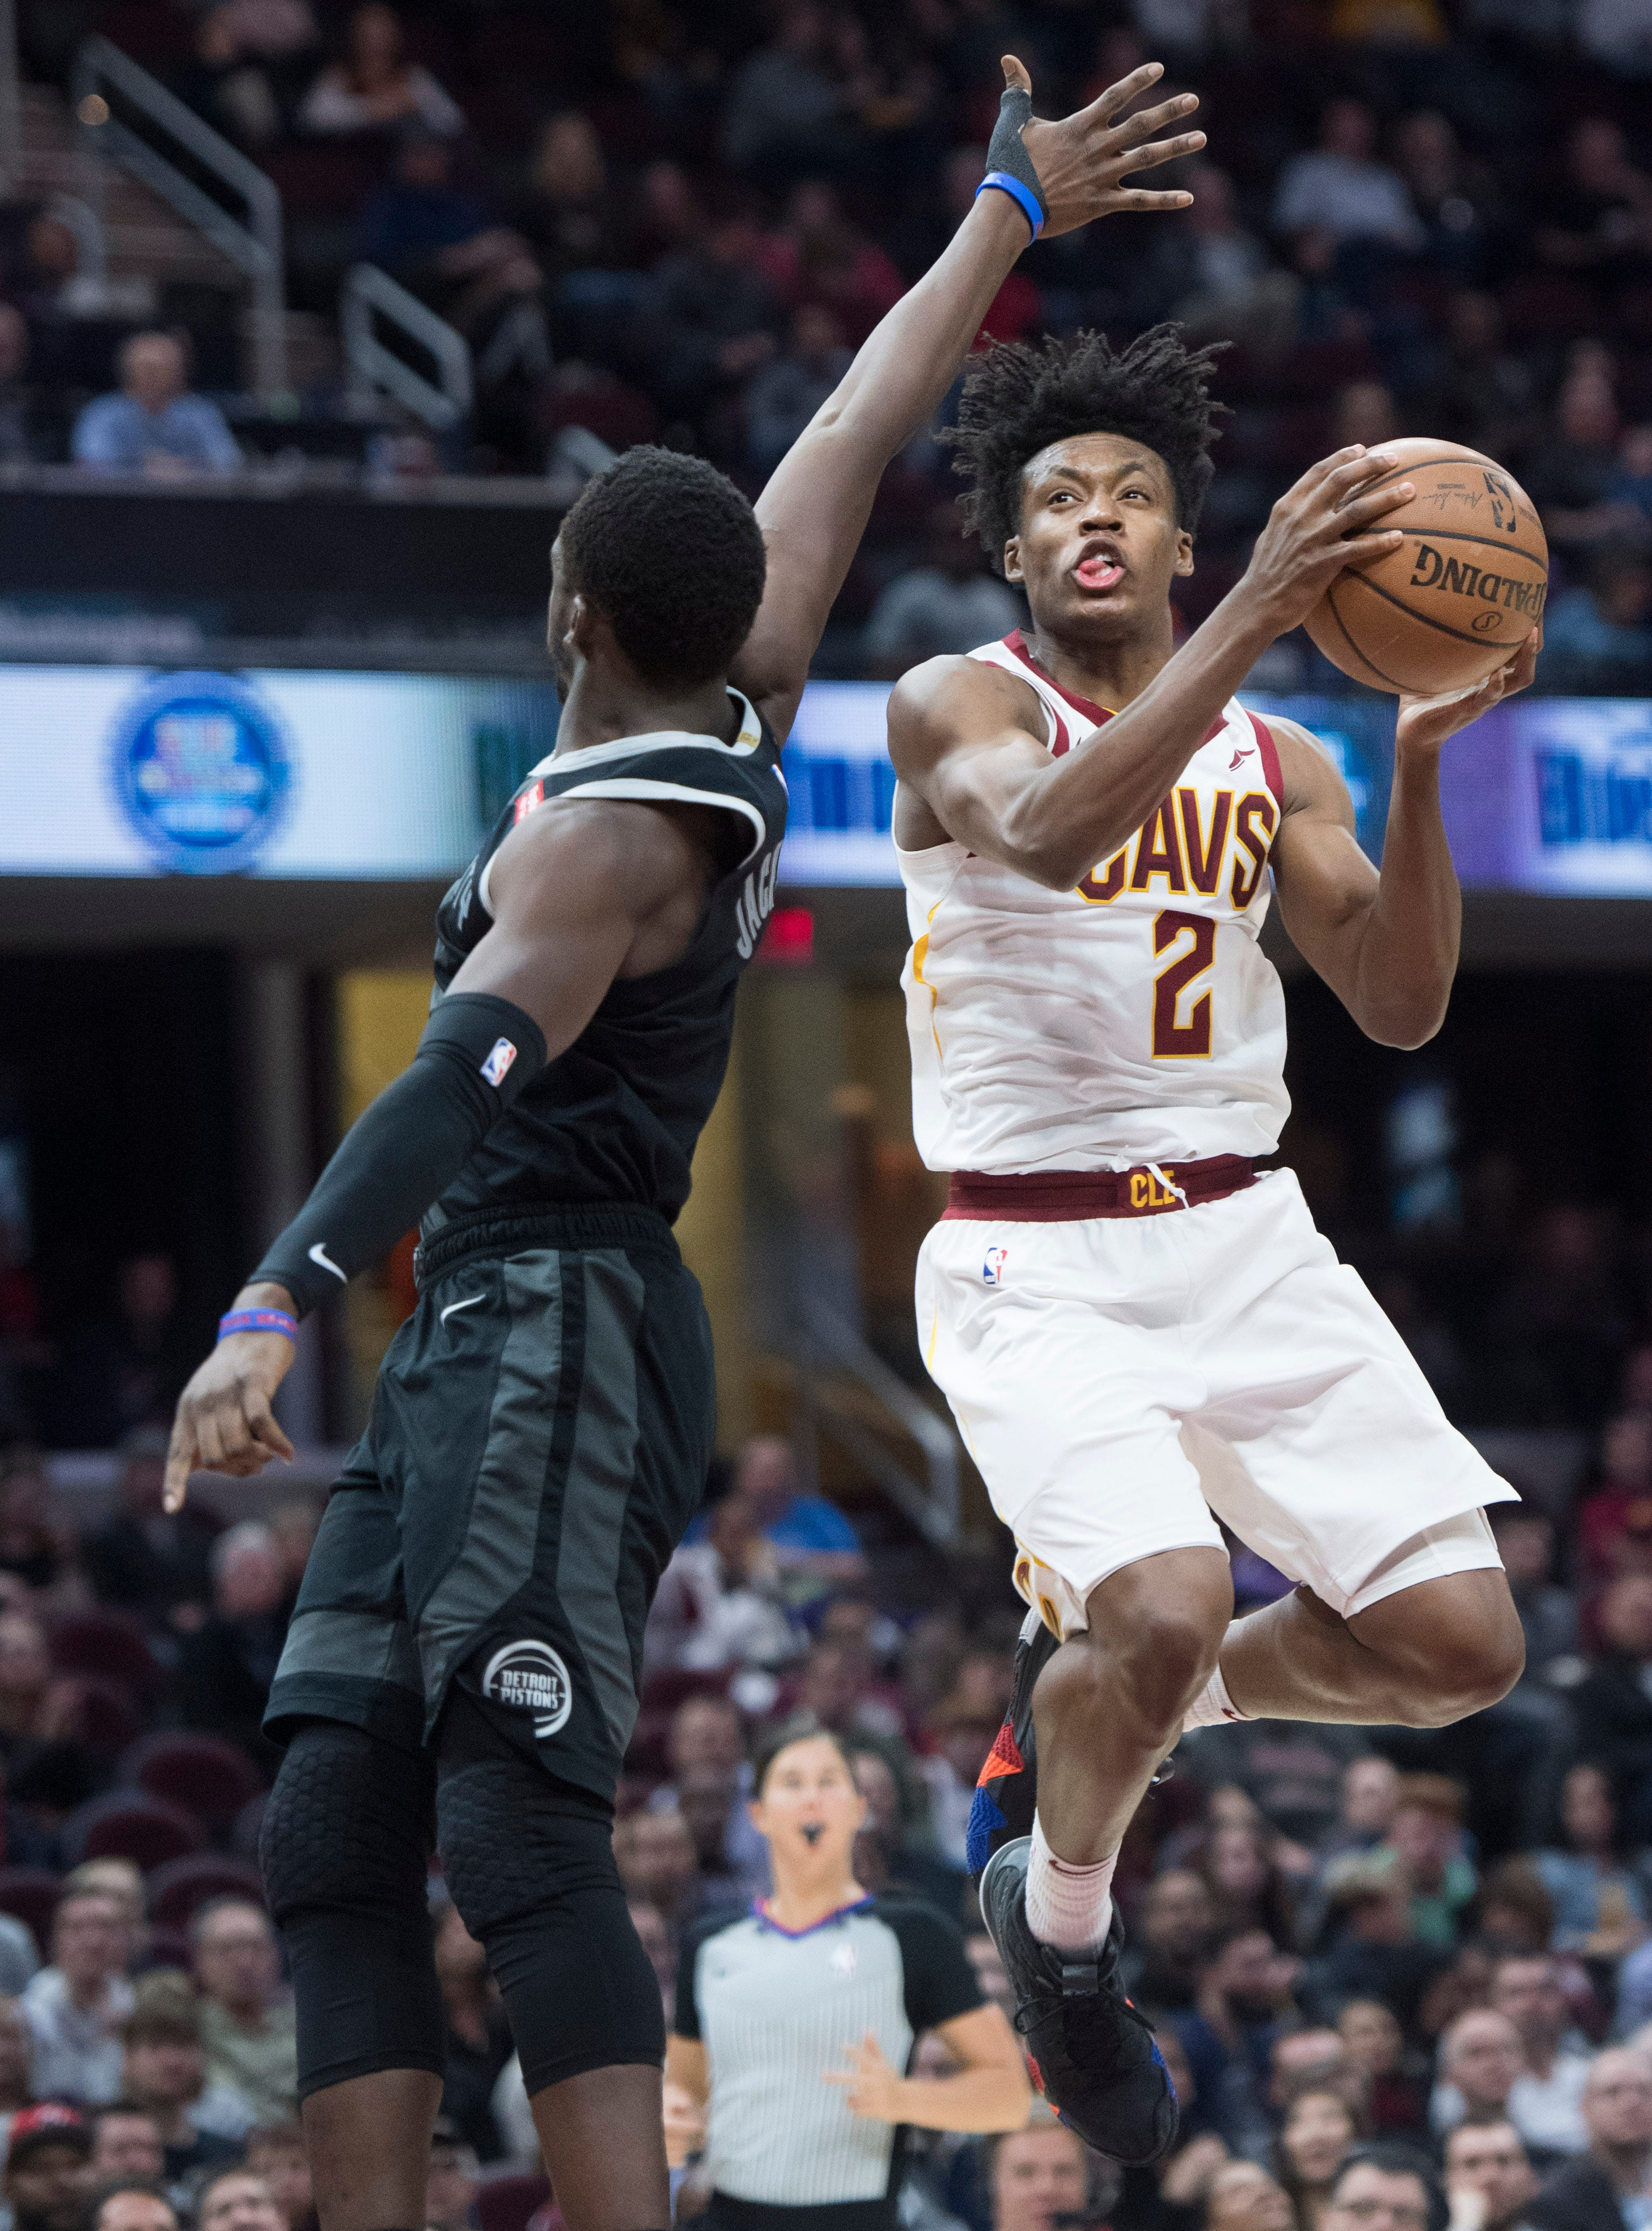 Cleveland Cavaliers' guard Collin Sexton drives to the basket against Detroit Pistons' guard Reggie Jackson, from Italy, in the first half of an NBA basketball game, Monday, March 18, 2019, in Cleveland.